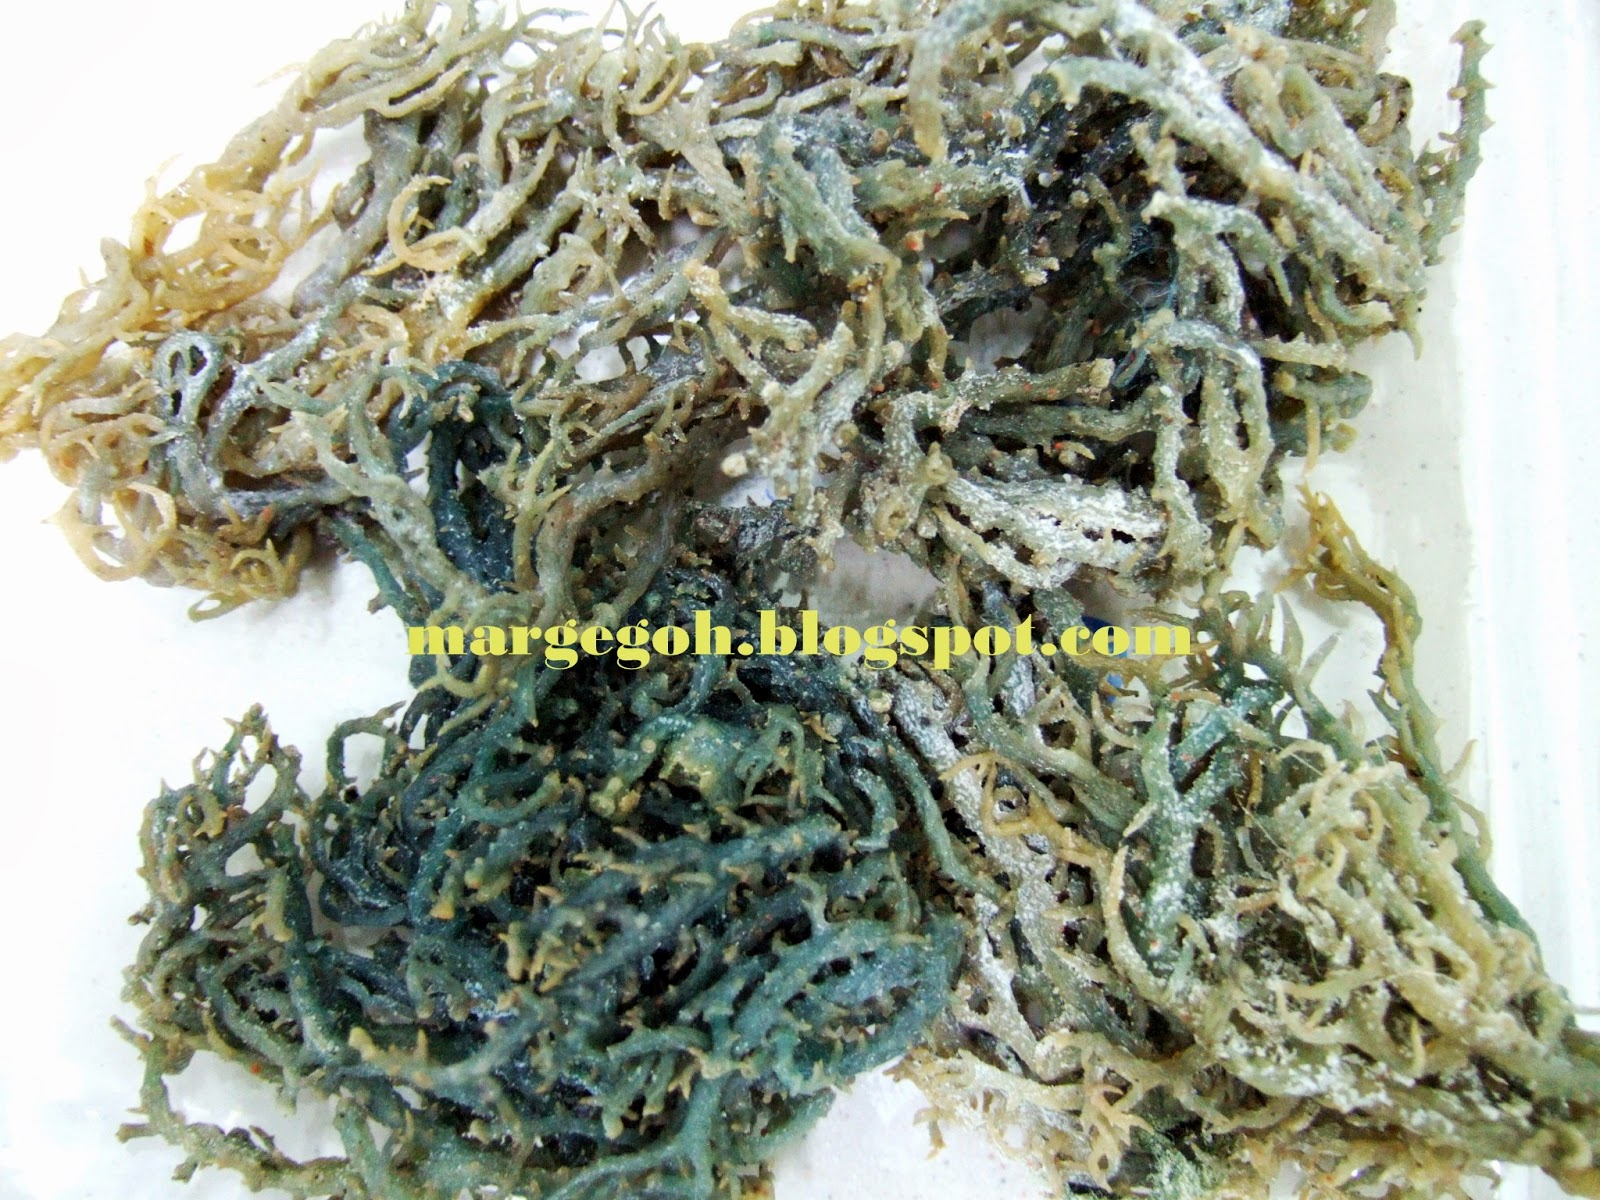 I Love My Style: Seaweed (Eucheuma Cottonii) and Its Benefits